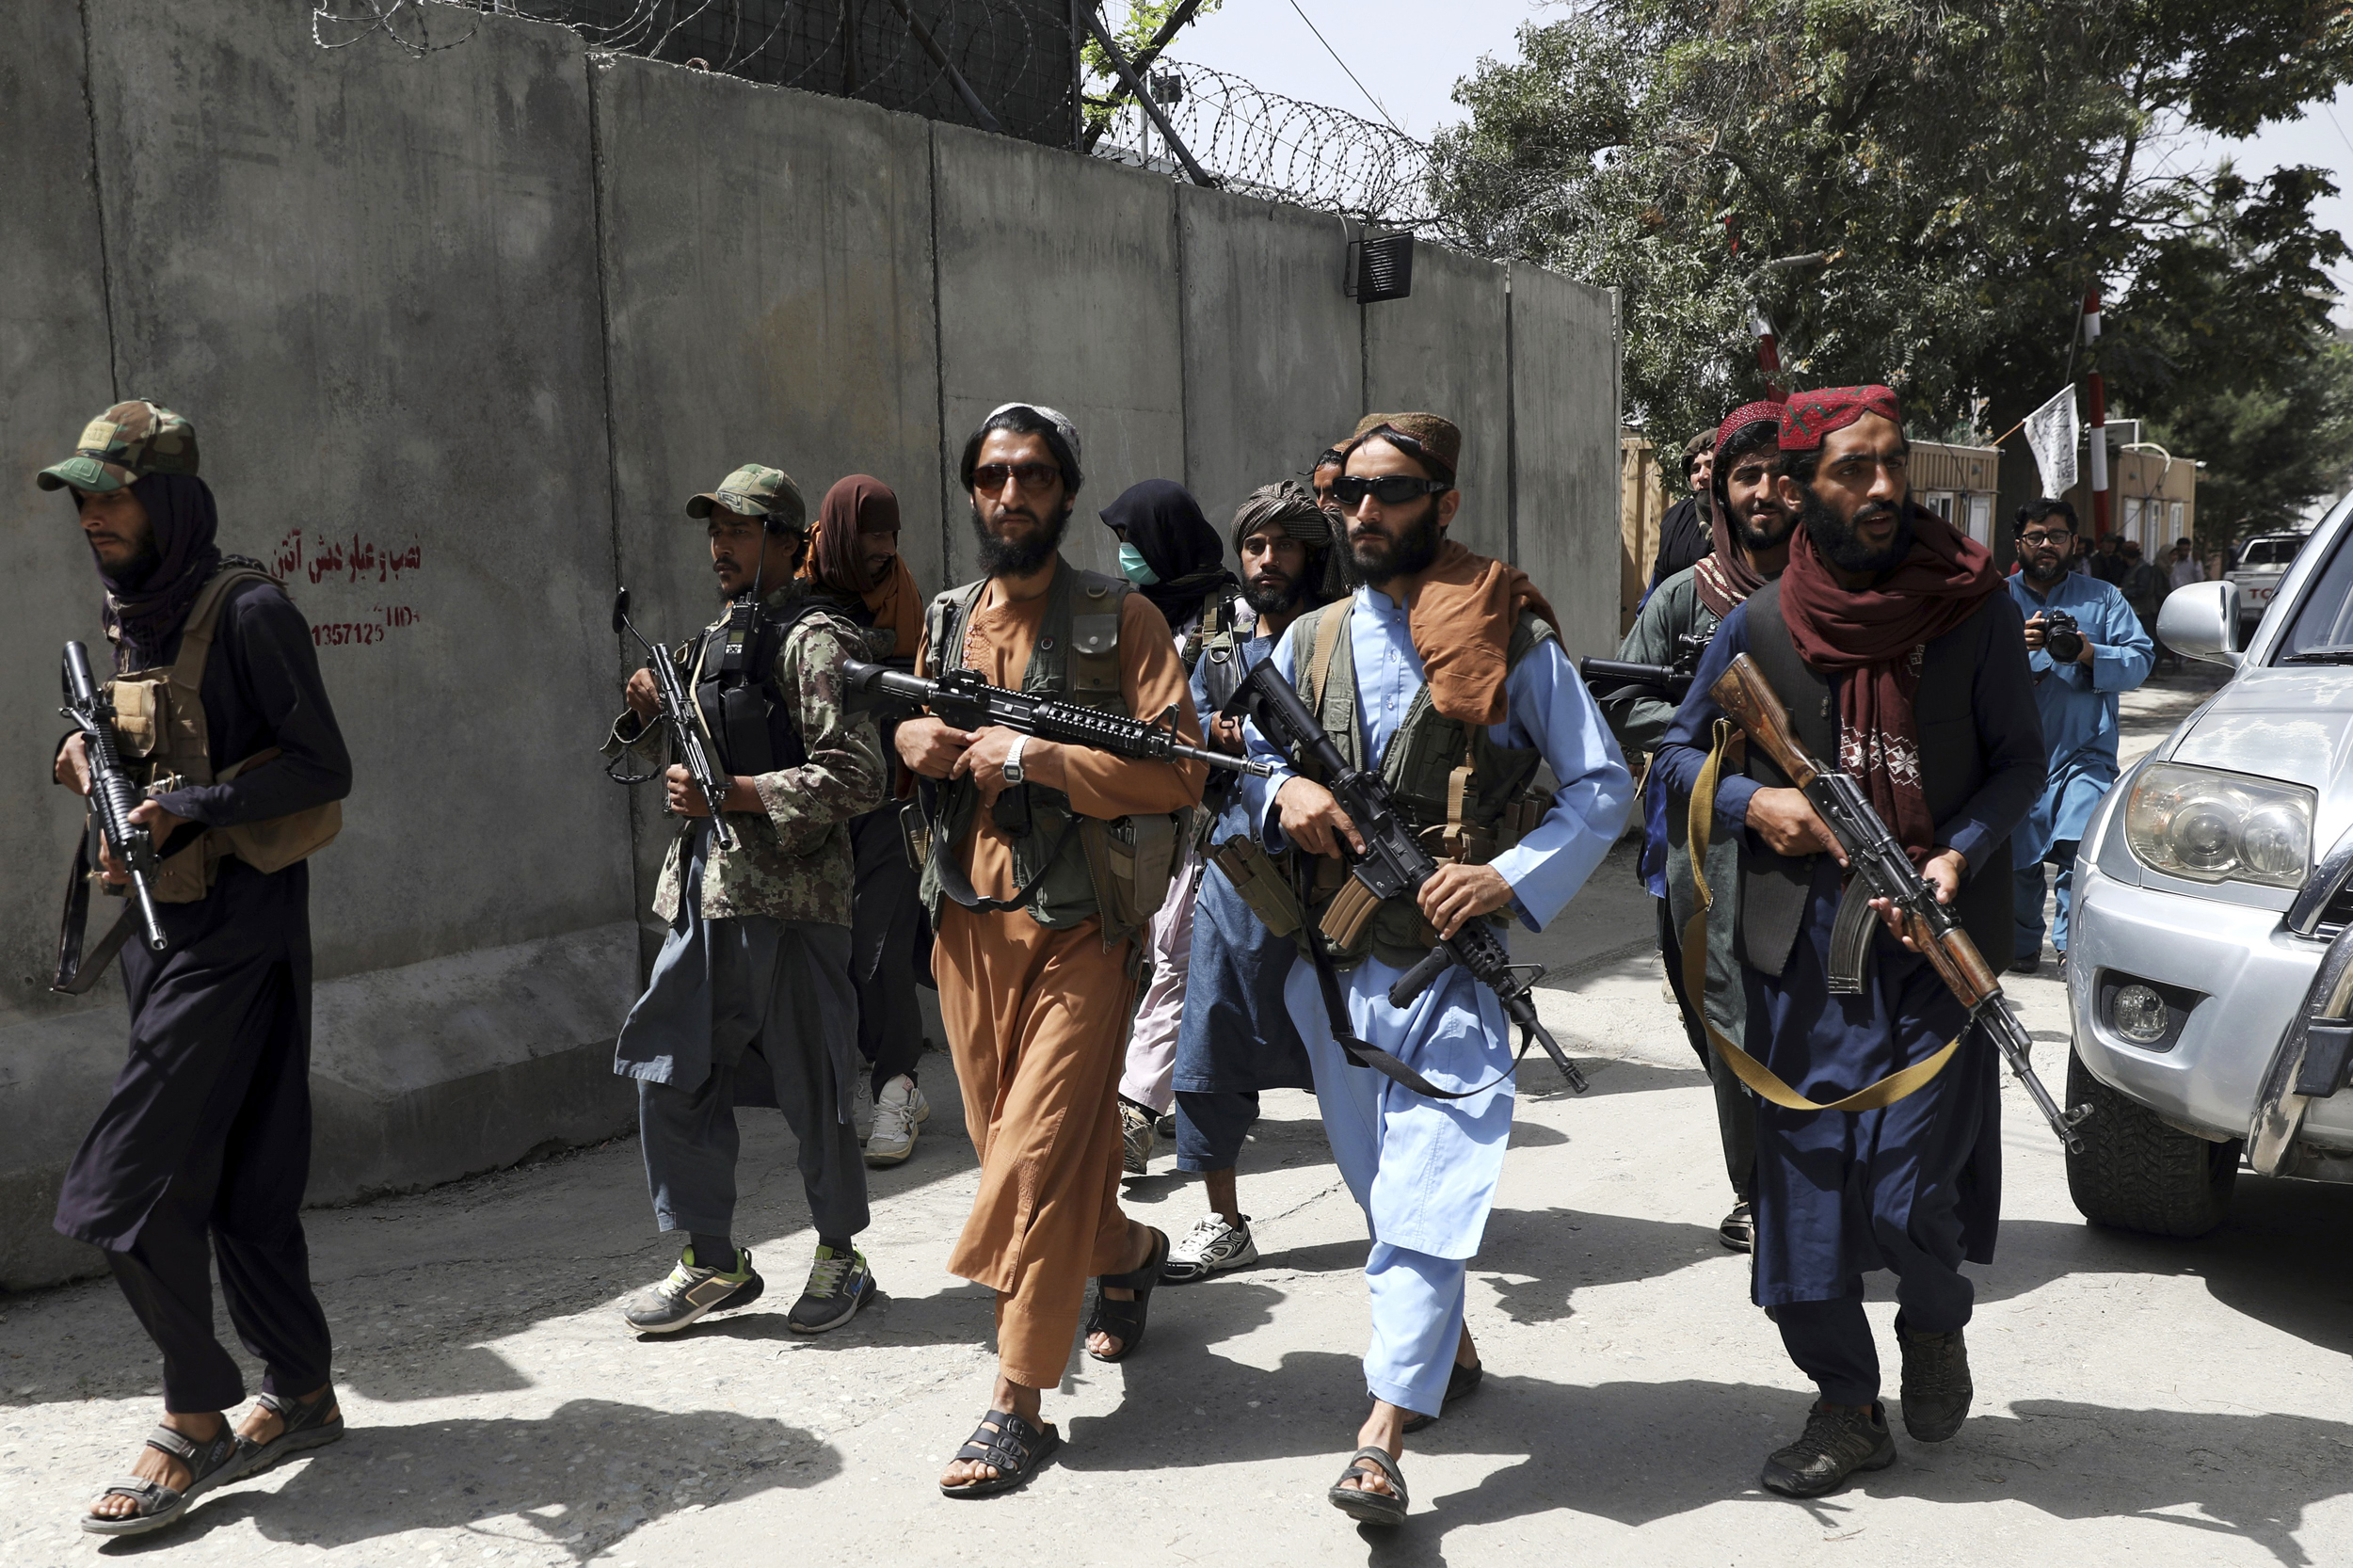 Former U.S. Army interpreter describes 'dangerous' Kabul conditions as he waits for escape